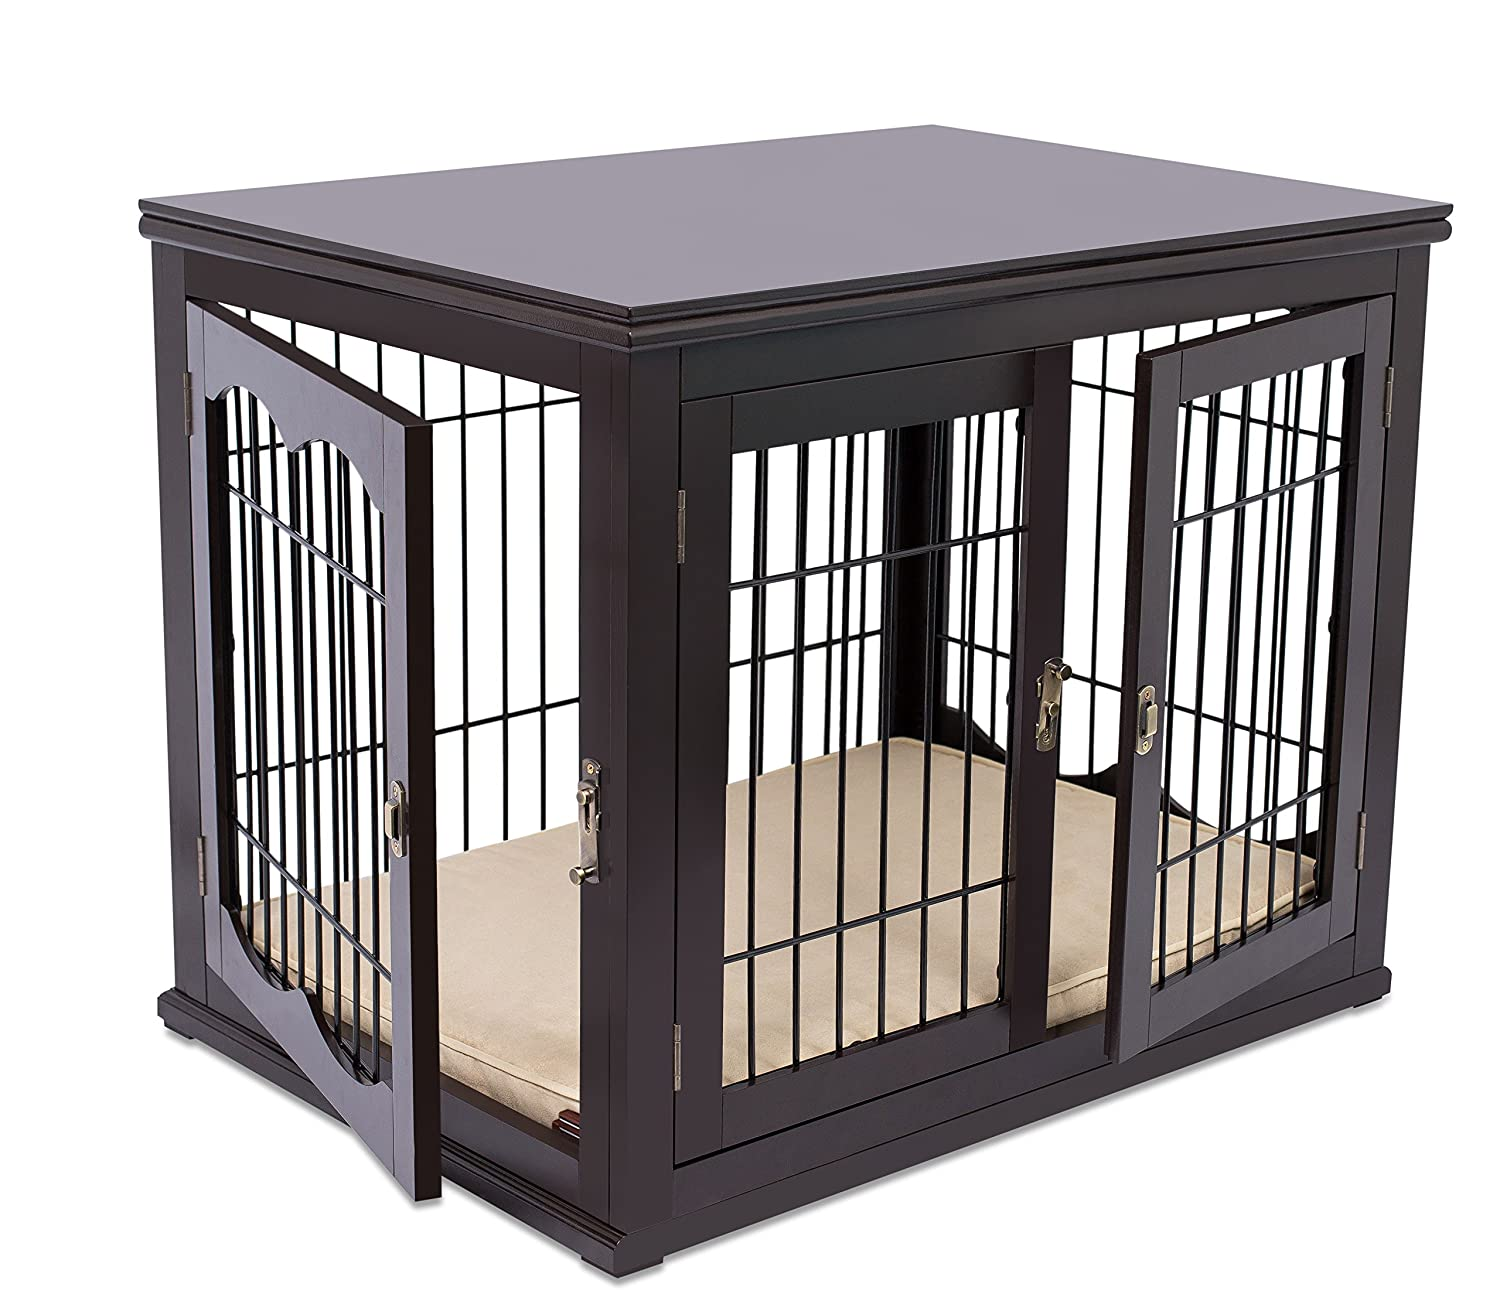 Amazon.com: Internetu0027s Best Decorative Dog Kennel With Pet Bed | Double  Door | Wooden Wire Dog House | Large Indoor Pet Crate Side Table |  Espresso: Pet ...